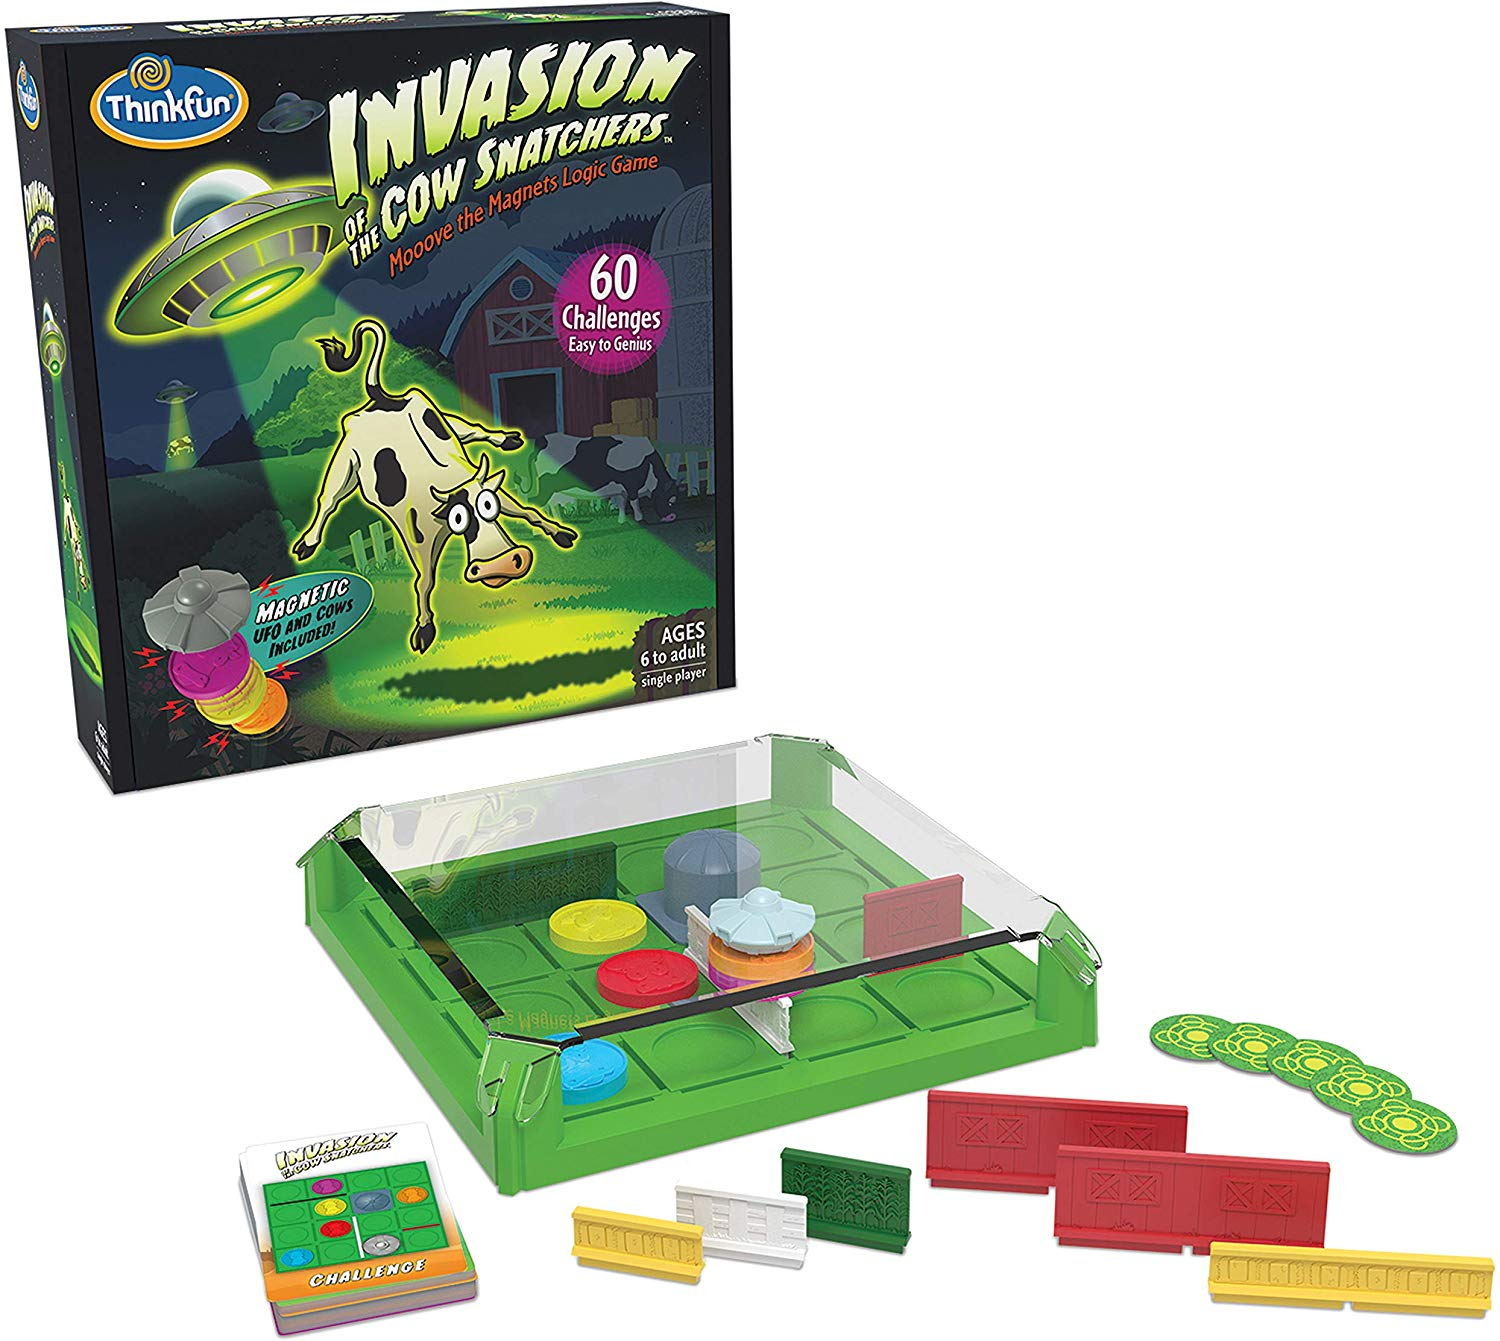 Invasion of the Cow Snatchers is one of ThinkFun's most fun new stem toys for boys and girls. It's a fun magnet maze logic game that comes with 60 challenges of increasing difficulty, from beginner to expert, and is one of the best gifts you can buy for kids who like smart games and a challenge.